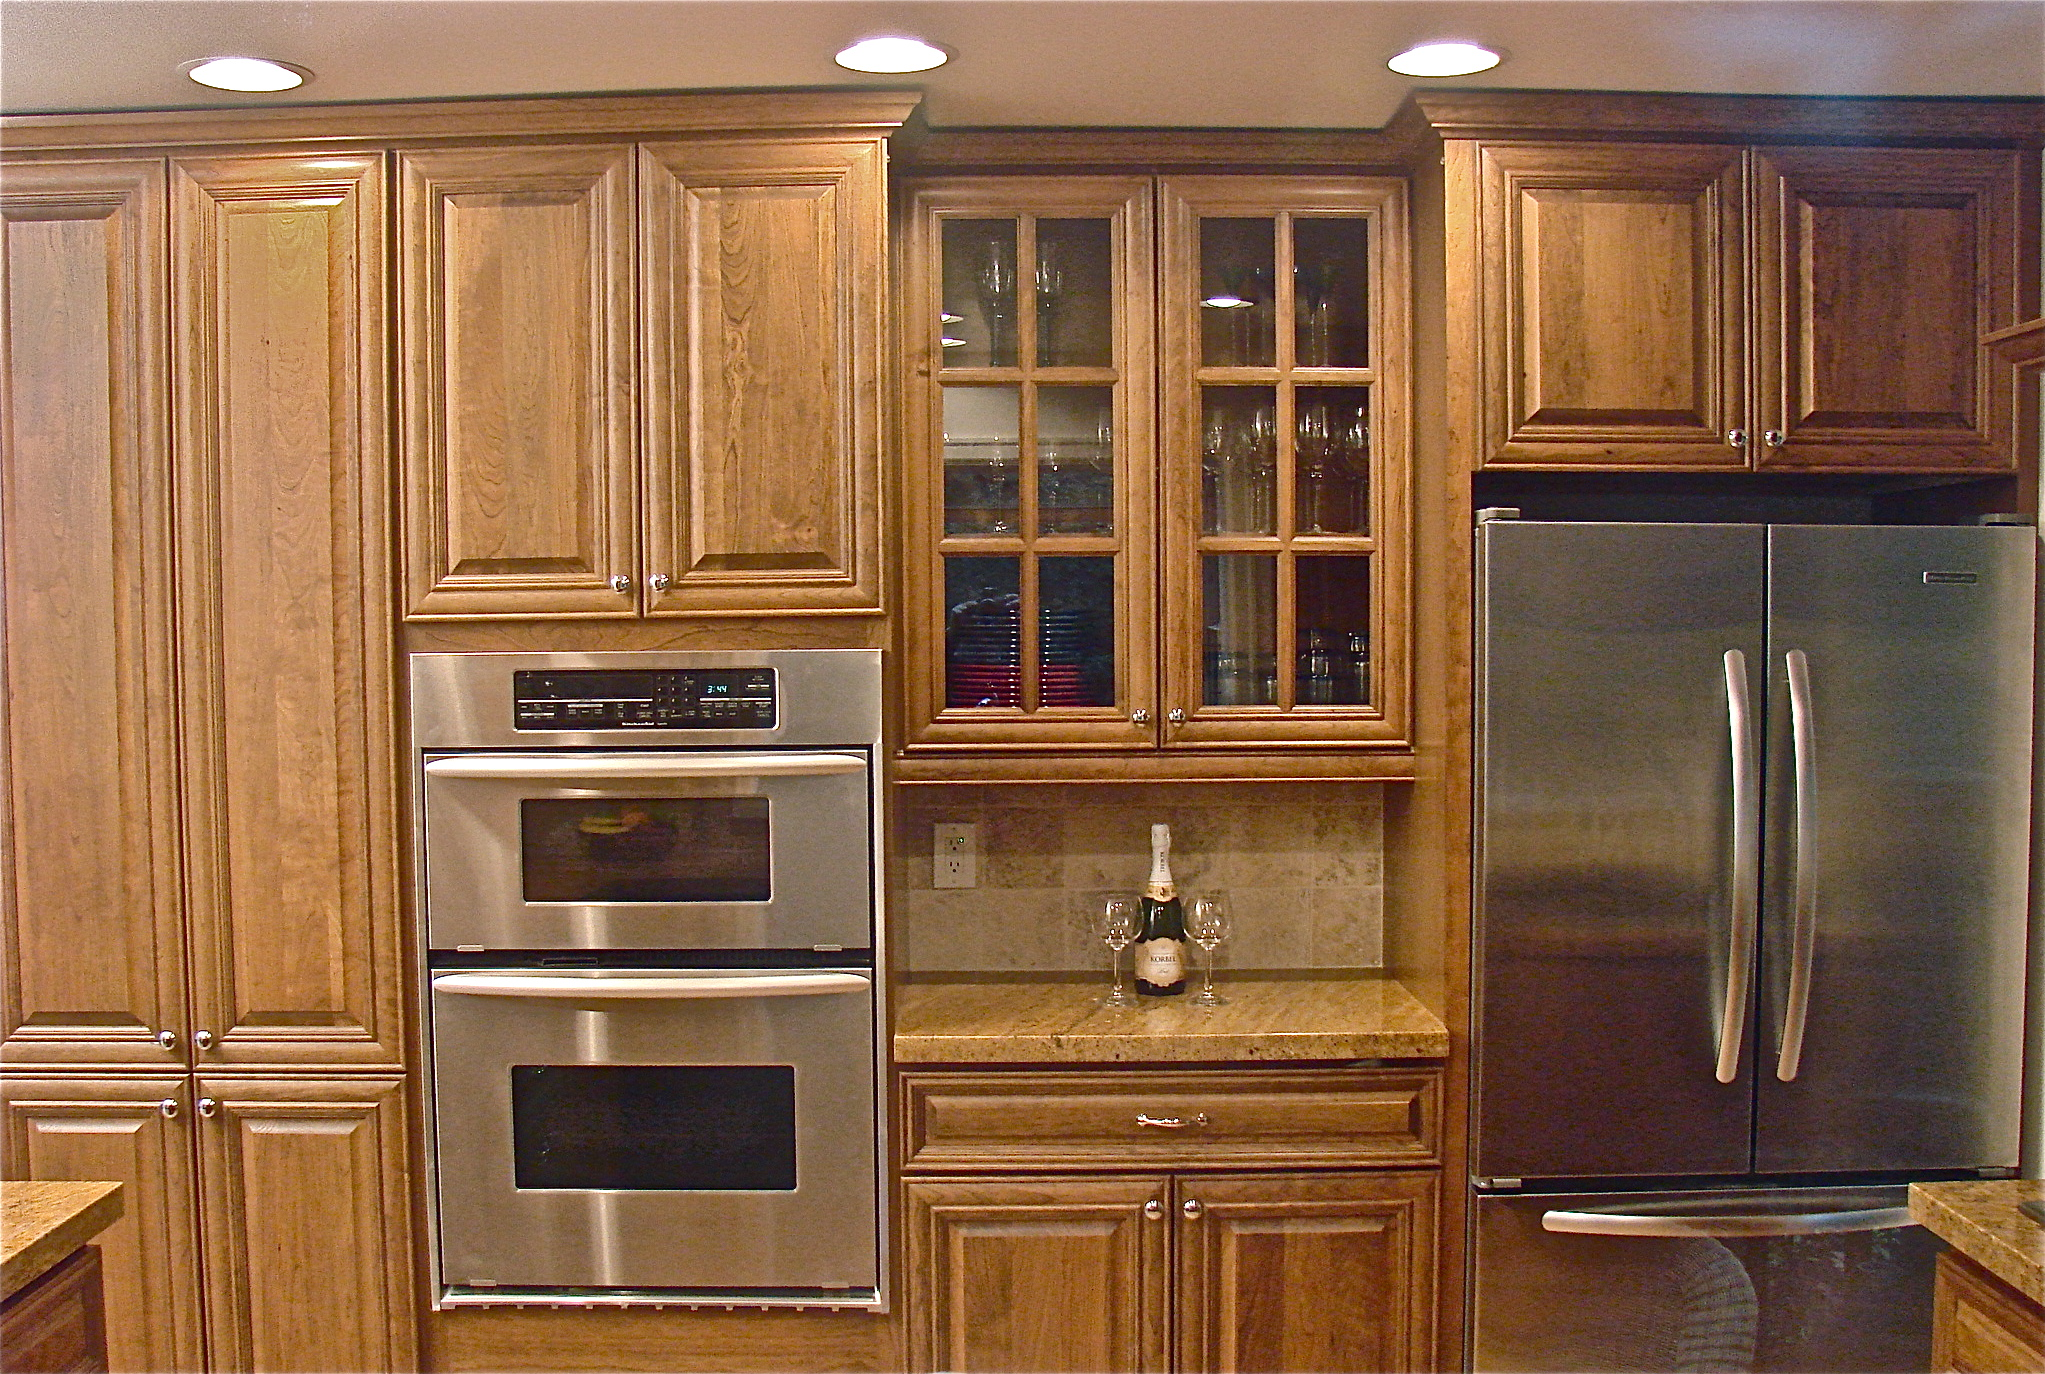 Kitchen cabinet stain colors home depot - Brooklyn Apartment